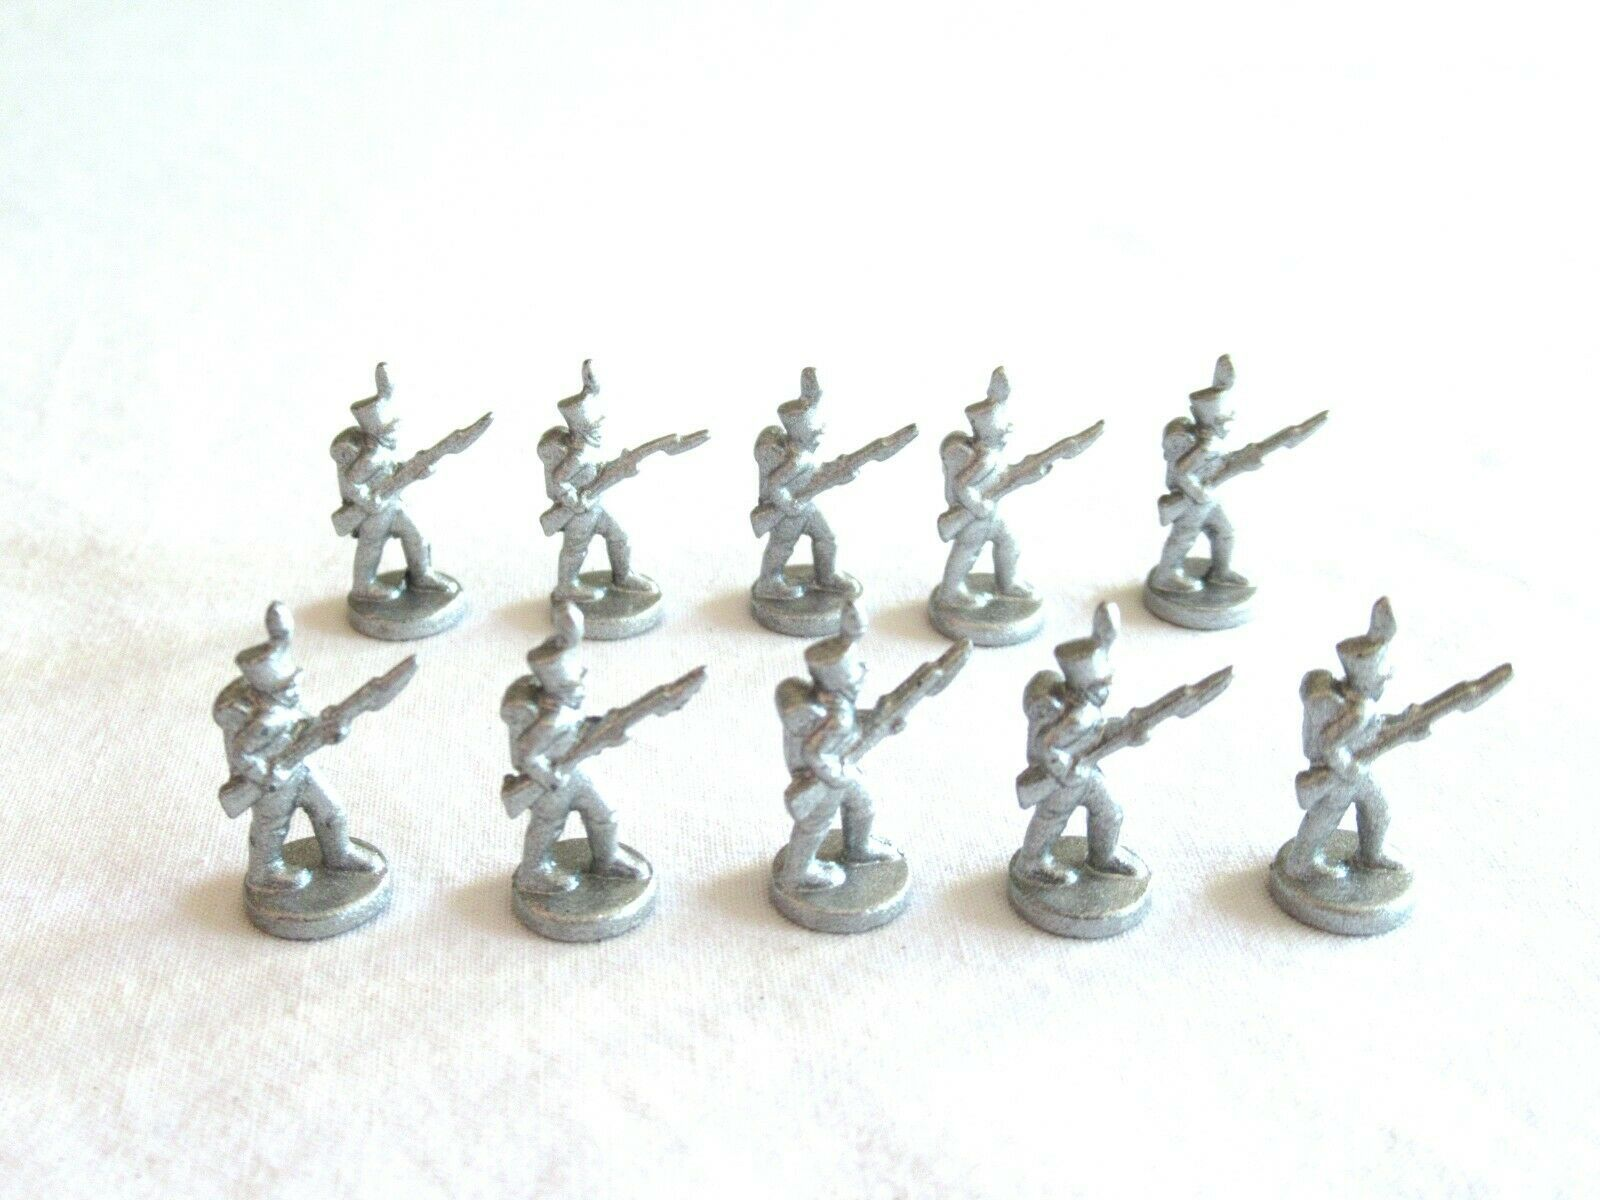 Primary image for 10x Risk 40th Anniversary Edition Board Game Metal Soldier Infantry Silver Army